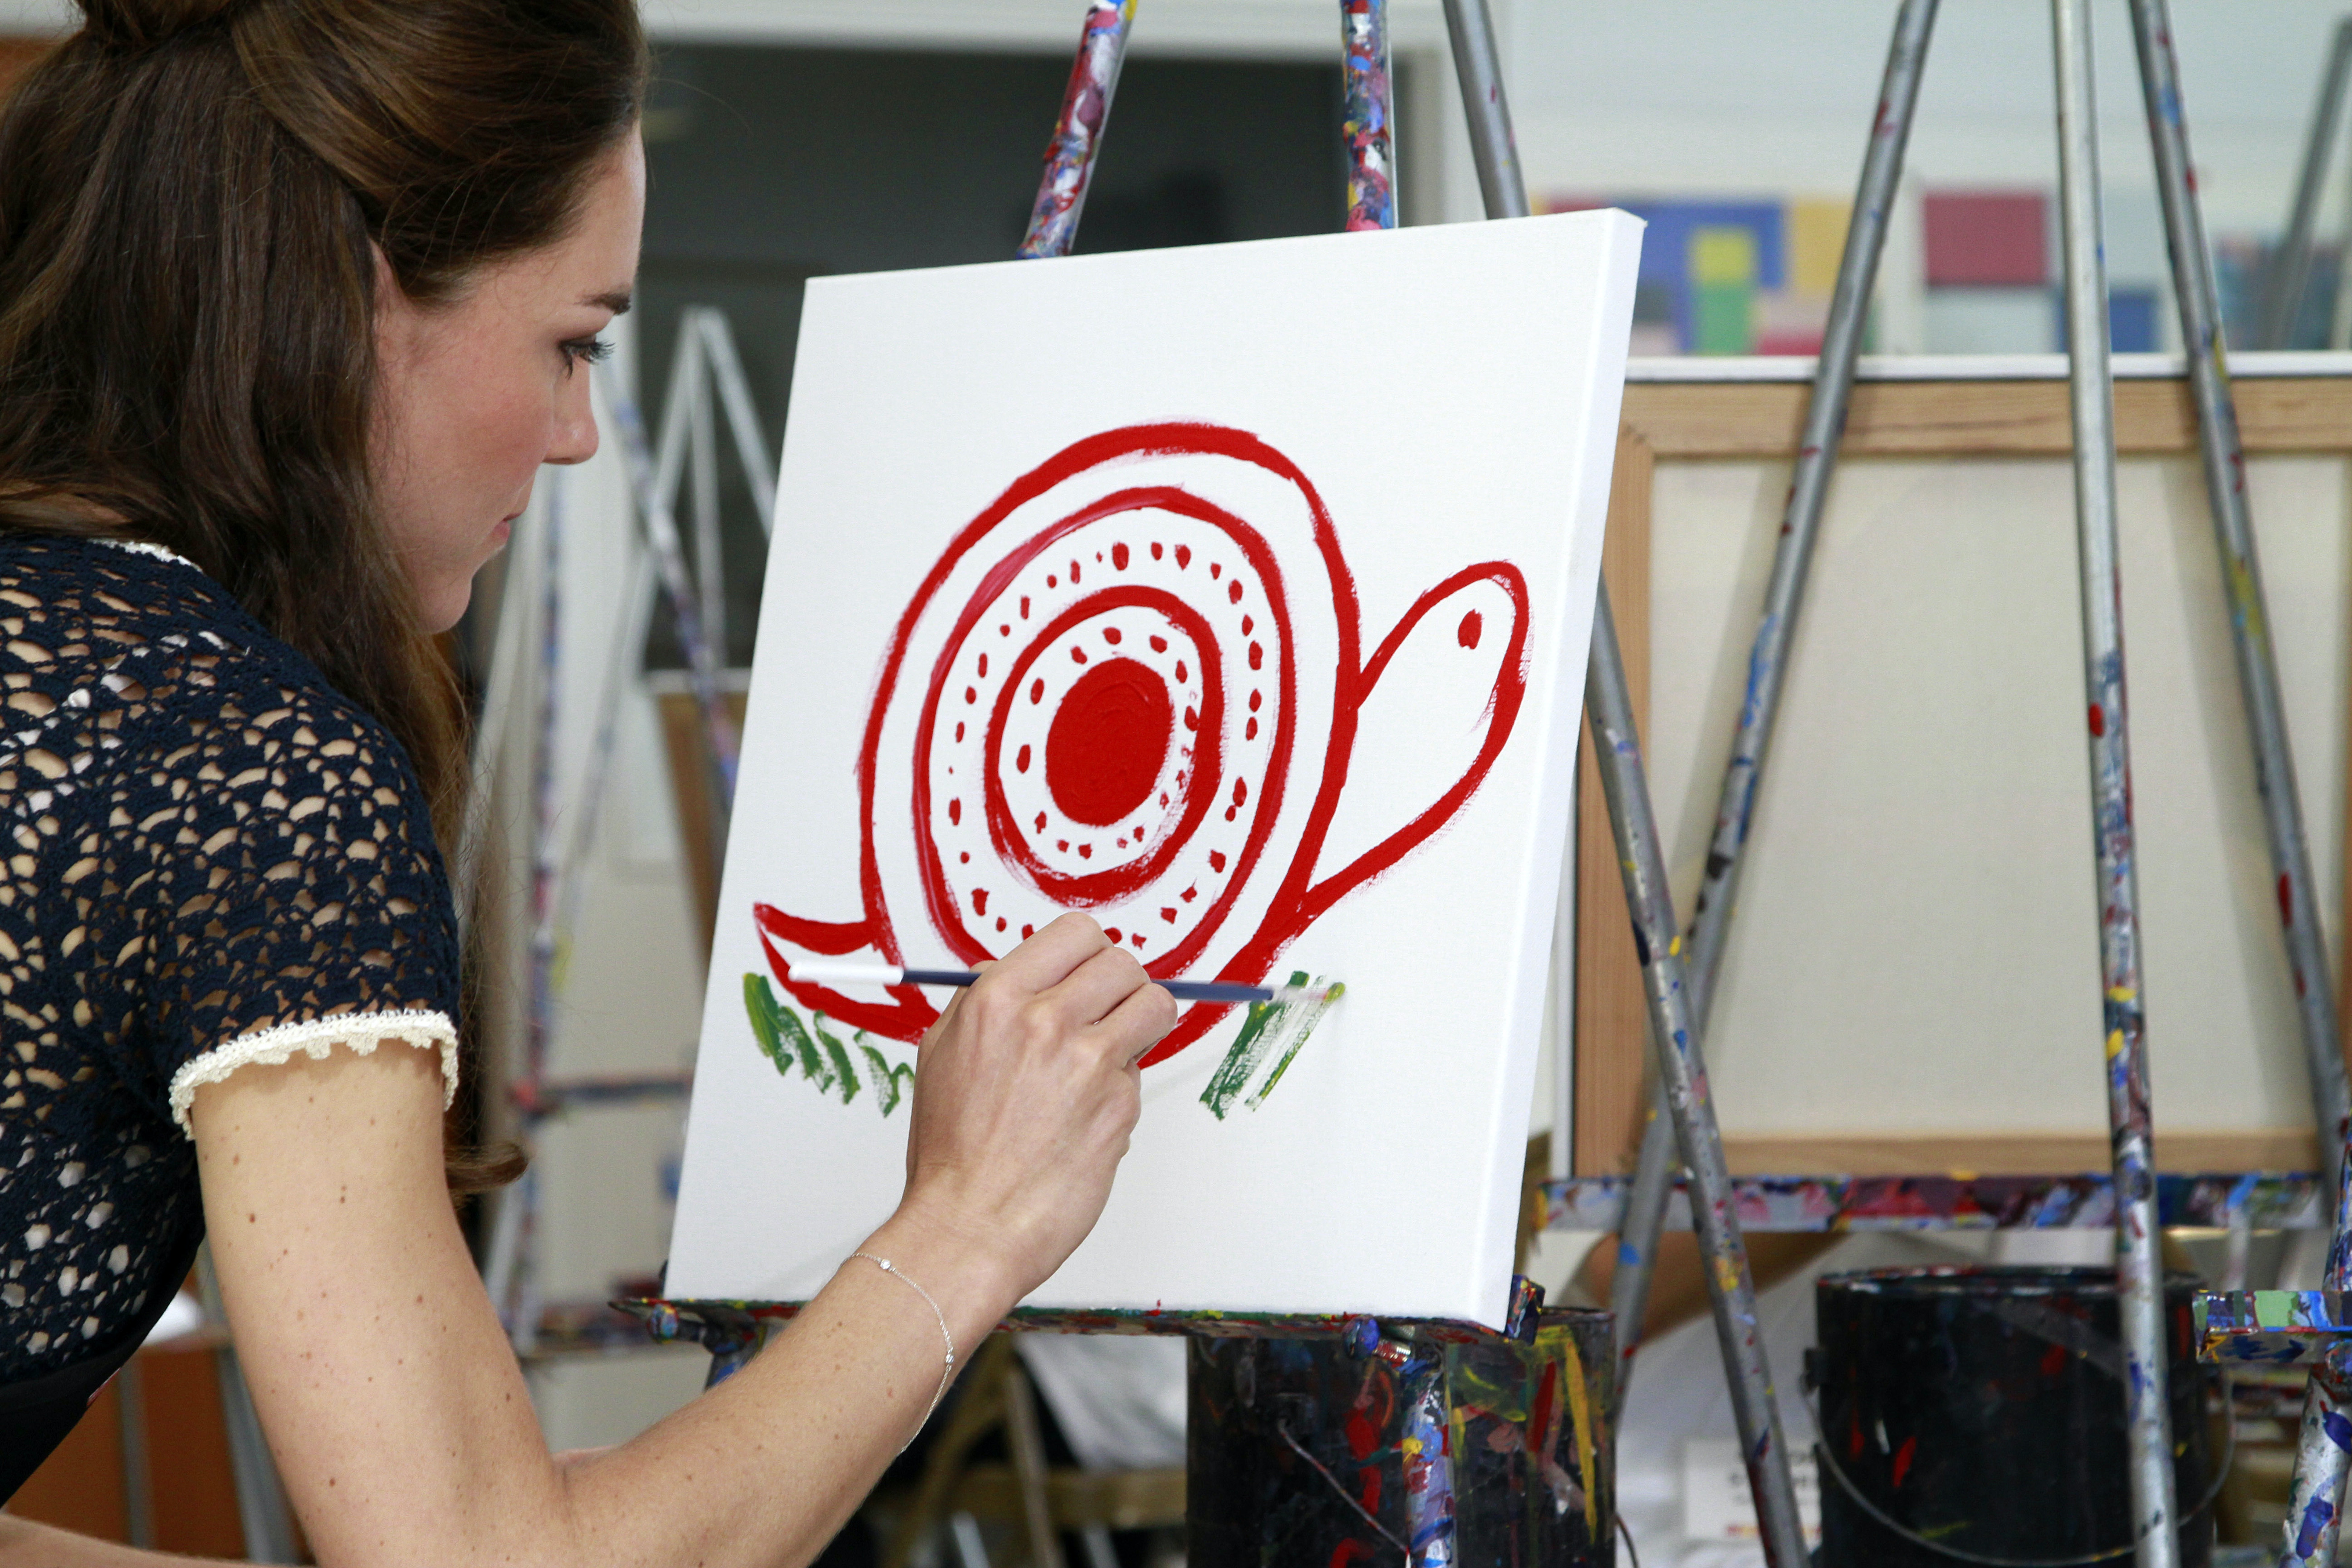 Catherine, Duchess of Cambridge paints a picture while attending an art class during their tour of the Inner City Arts campus on July 10, 2011 in the Skid Row section of Los Angeles, California. Prince William and his wife Catherine are on a royal visit to California from July 8 to July 10. (Photo by Liz O. Baylen - Pool/Getty Images)